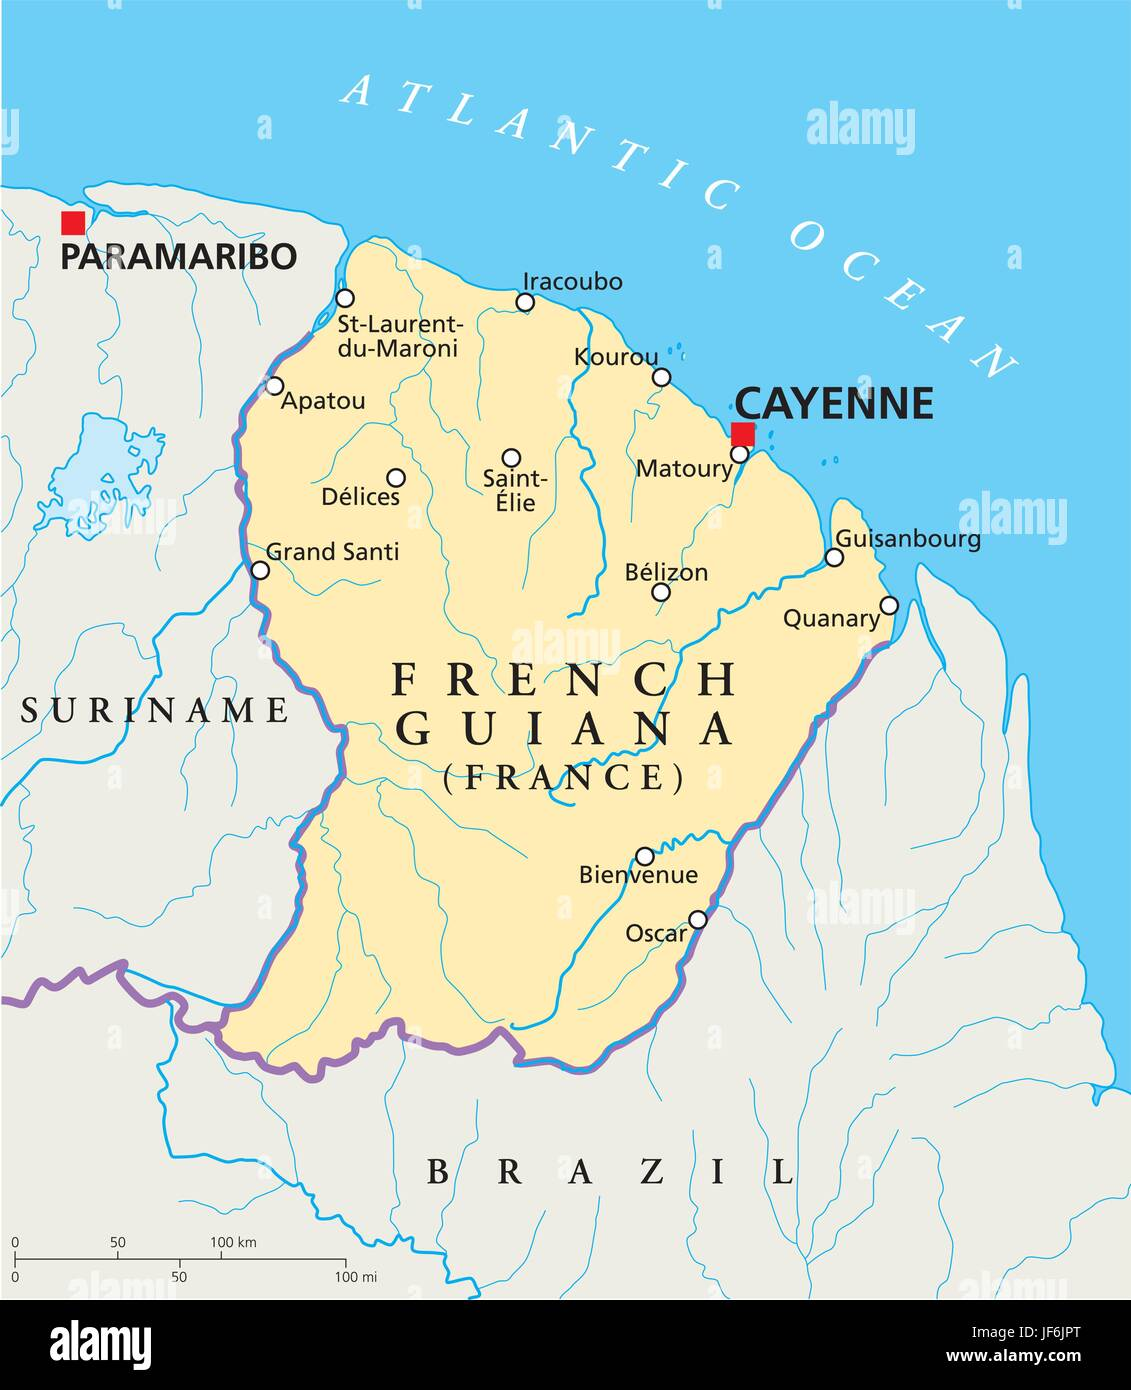 France French Guiana Overseas Department Stock Photos France - South america french guiana map